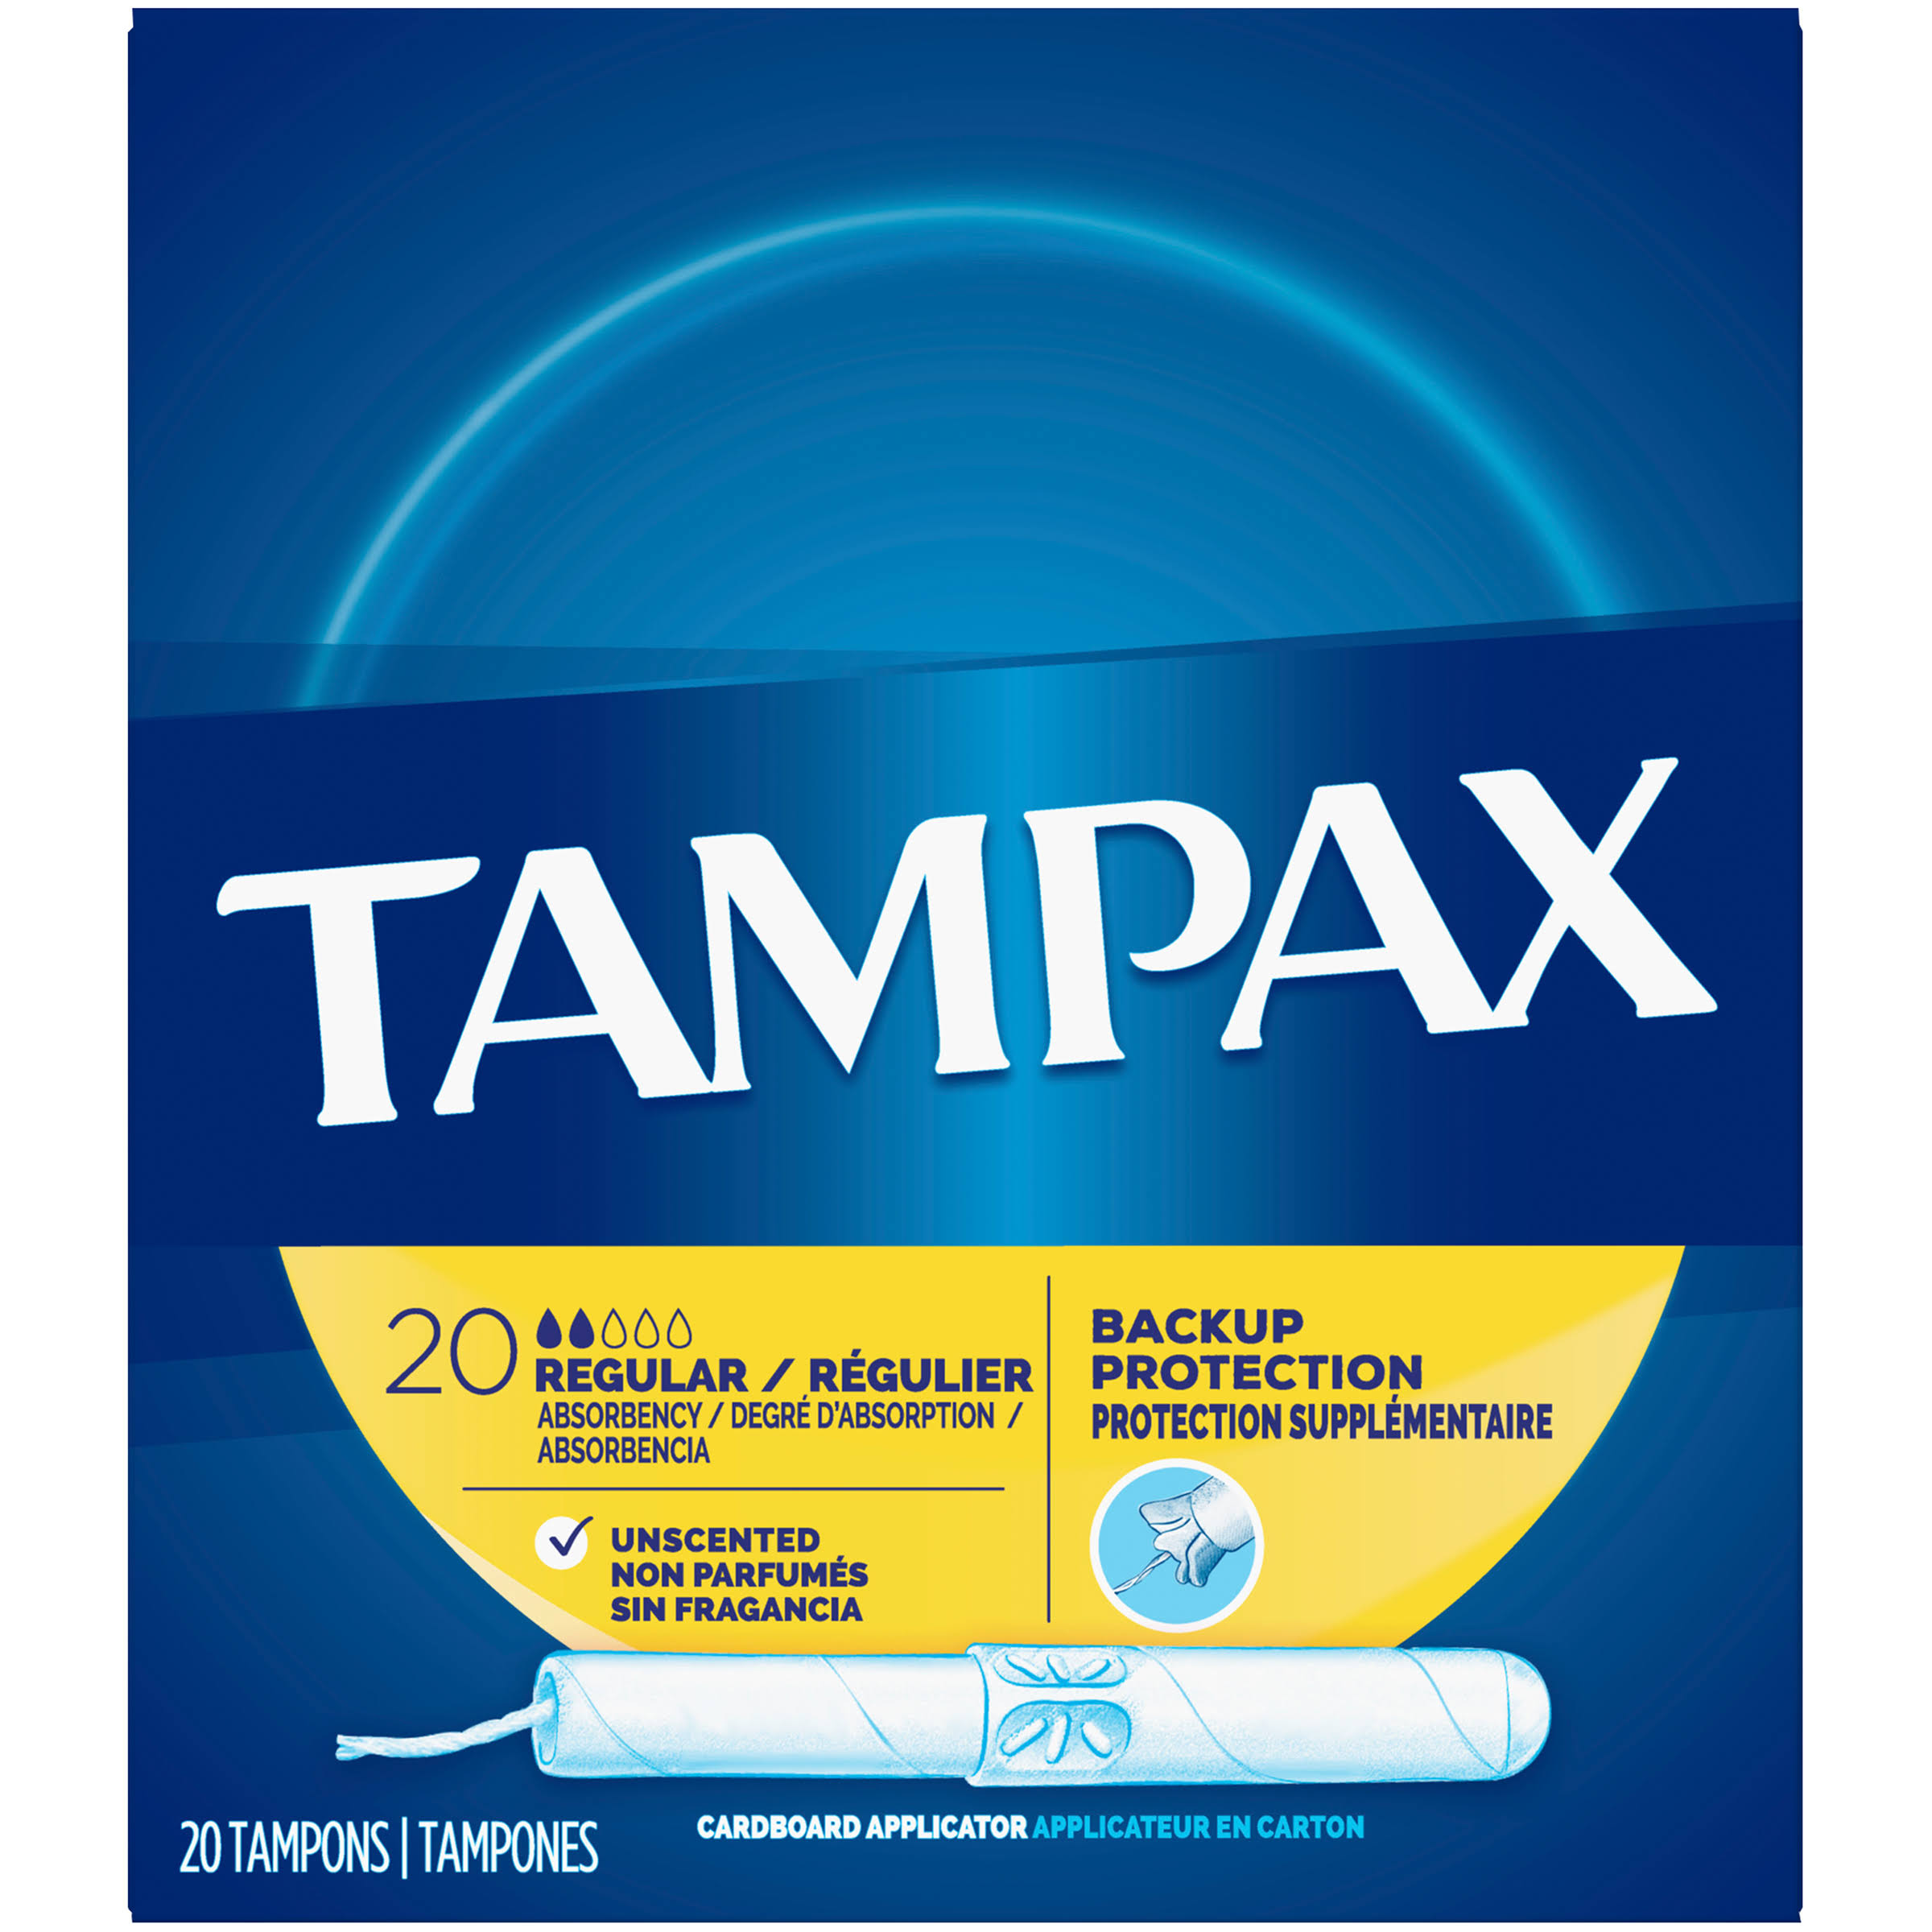 Tampax Cardboard Applicator - 20 Tampons, Regular